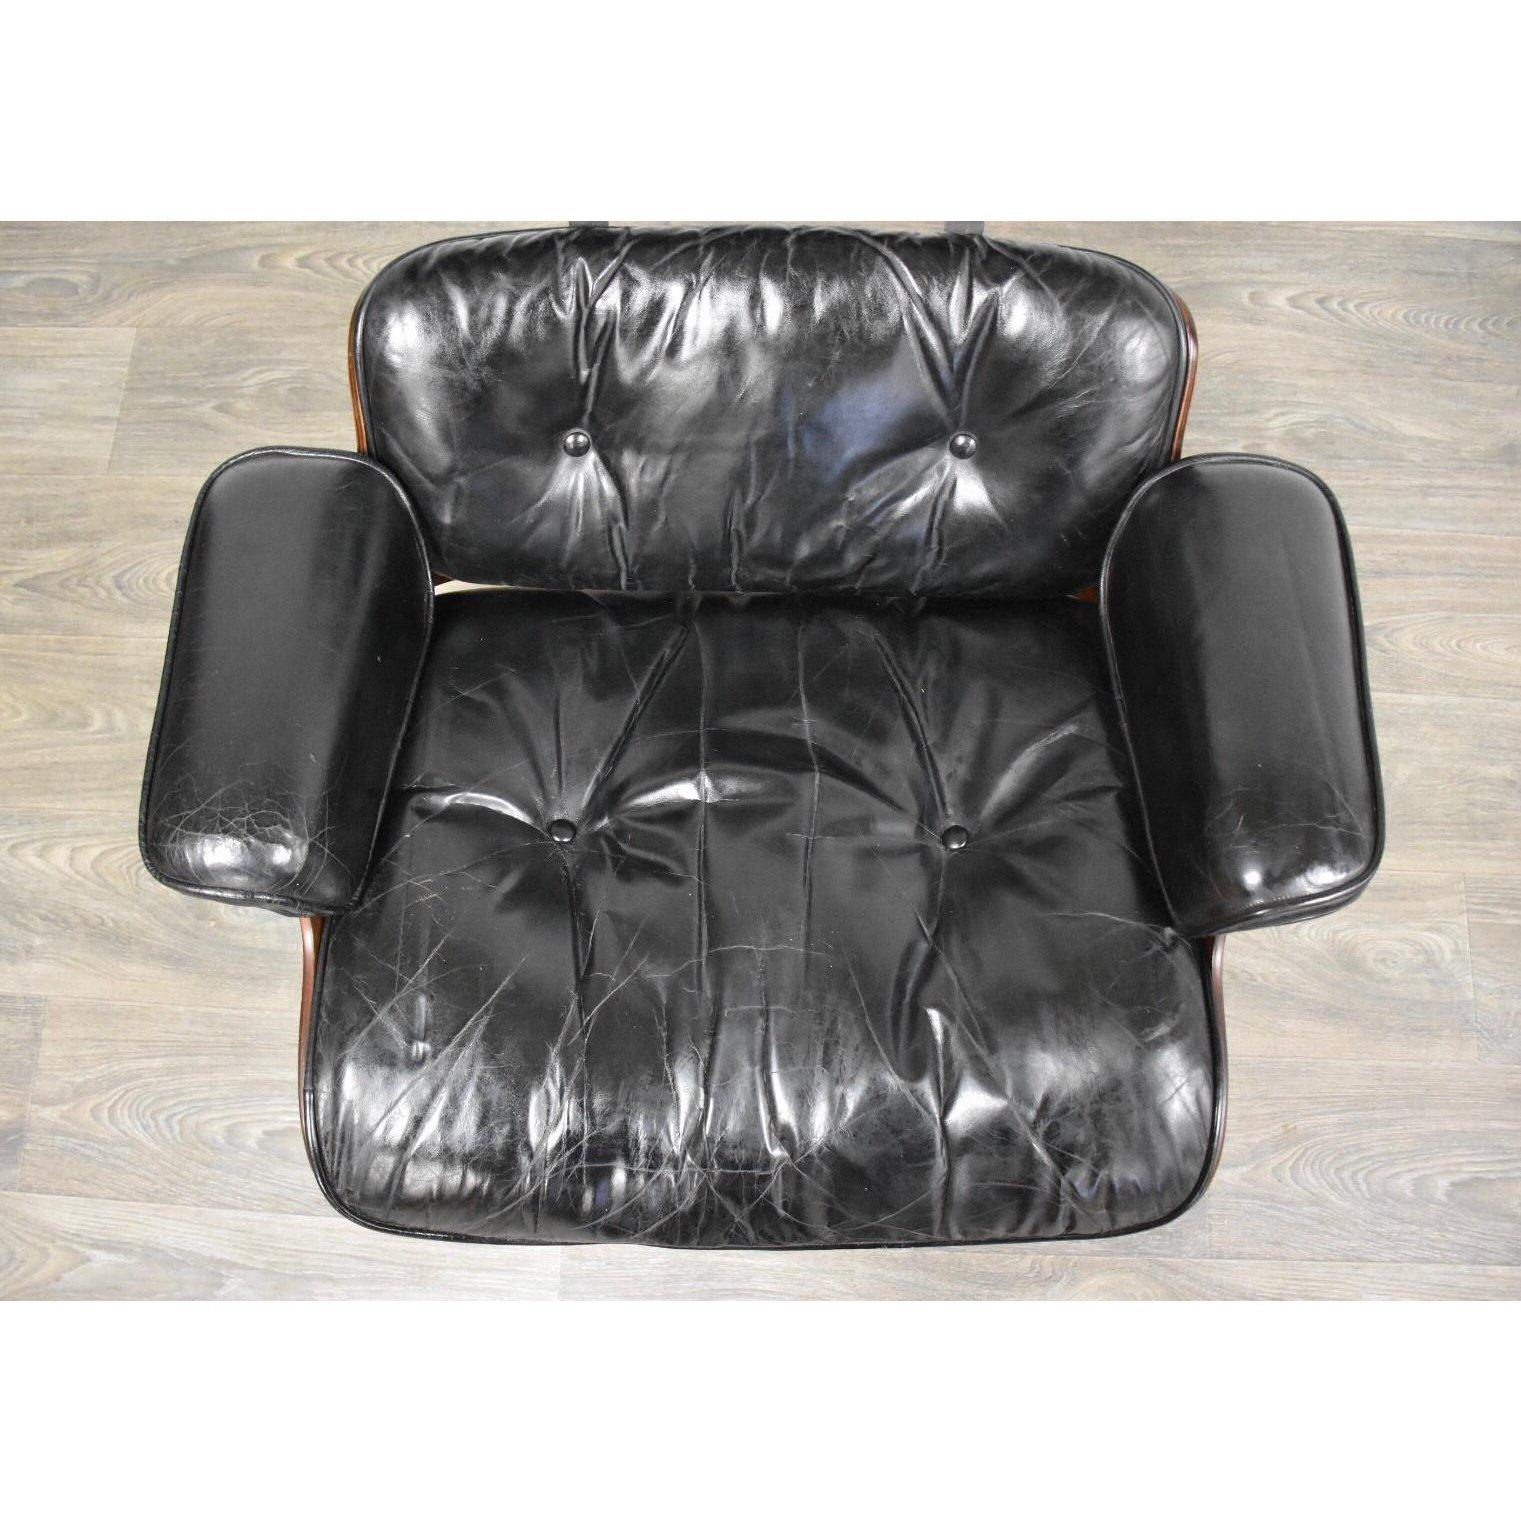 Magnificent Original Herman Miller Eames Lounge Chair Ottoman Dailytribune Chair Design For Home Dailytribuneorg